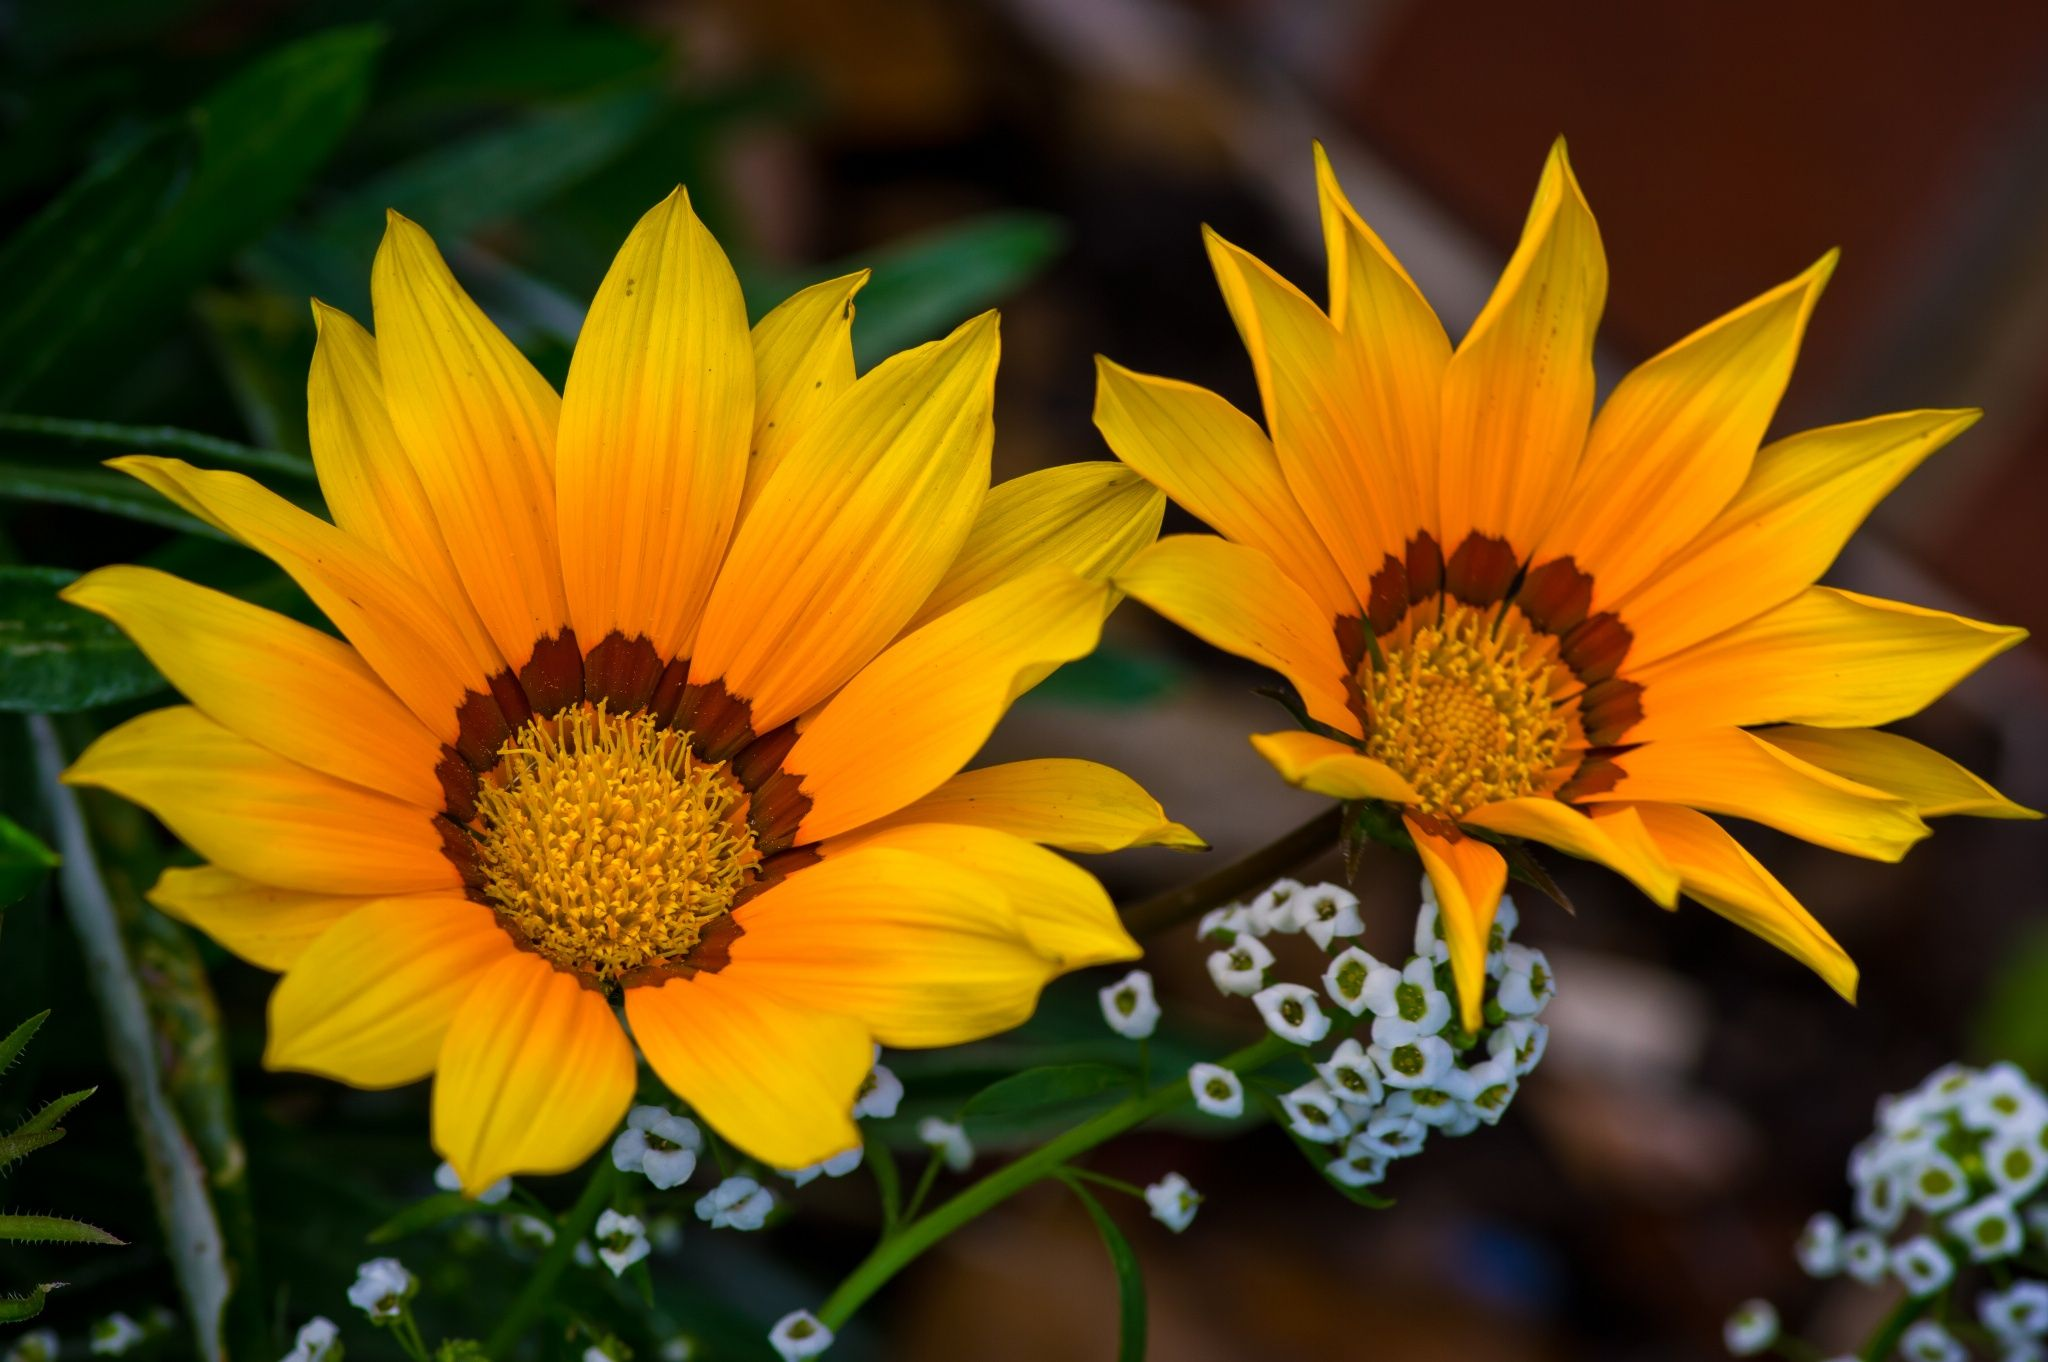 Gazania daisy 2 by Darrell Raw on 500px